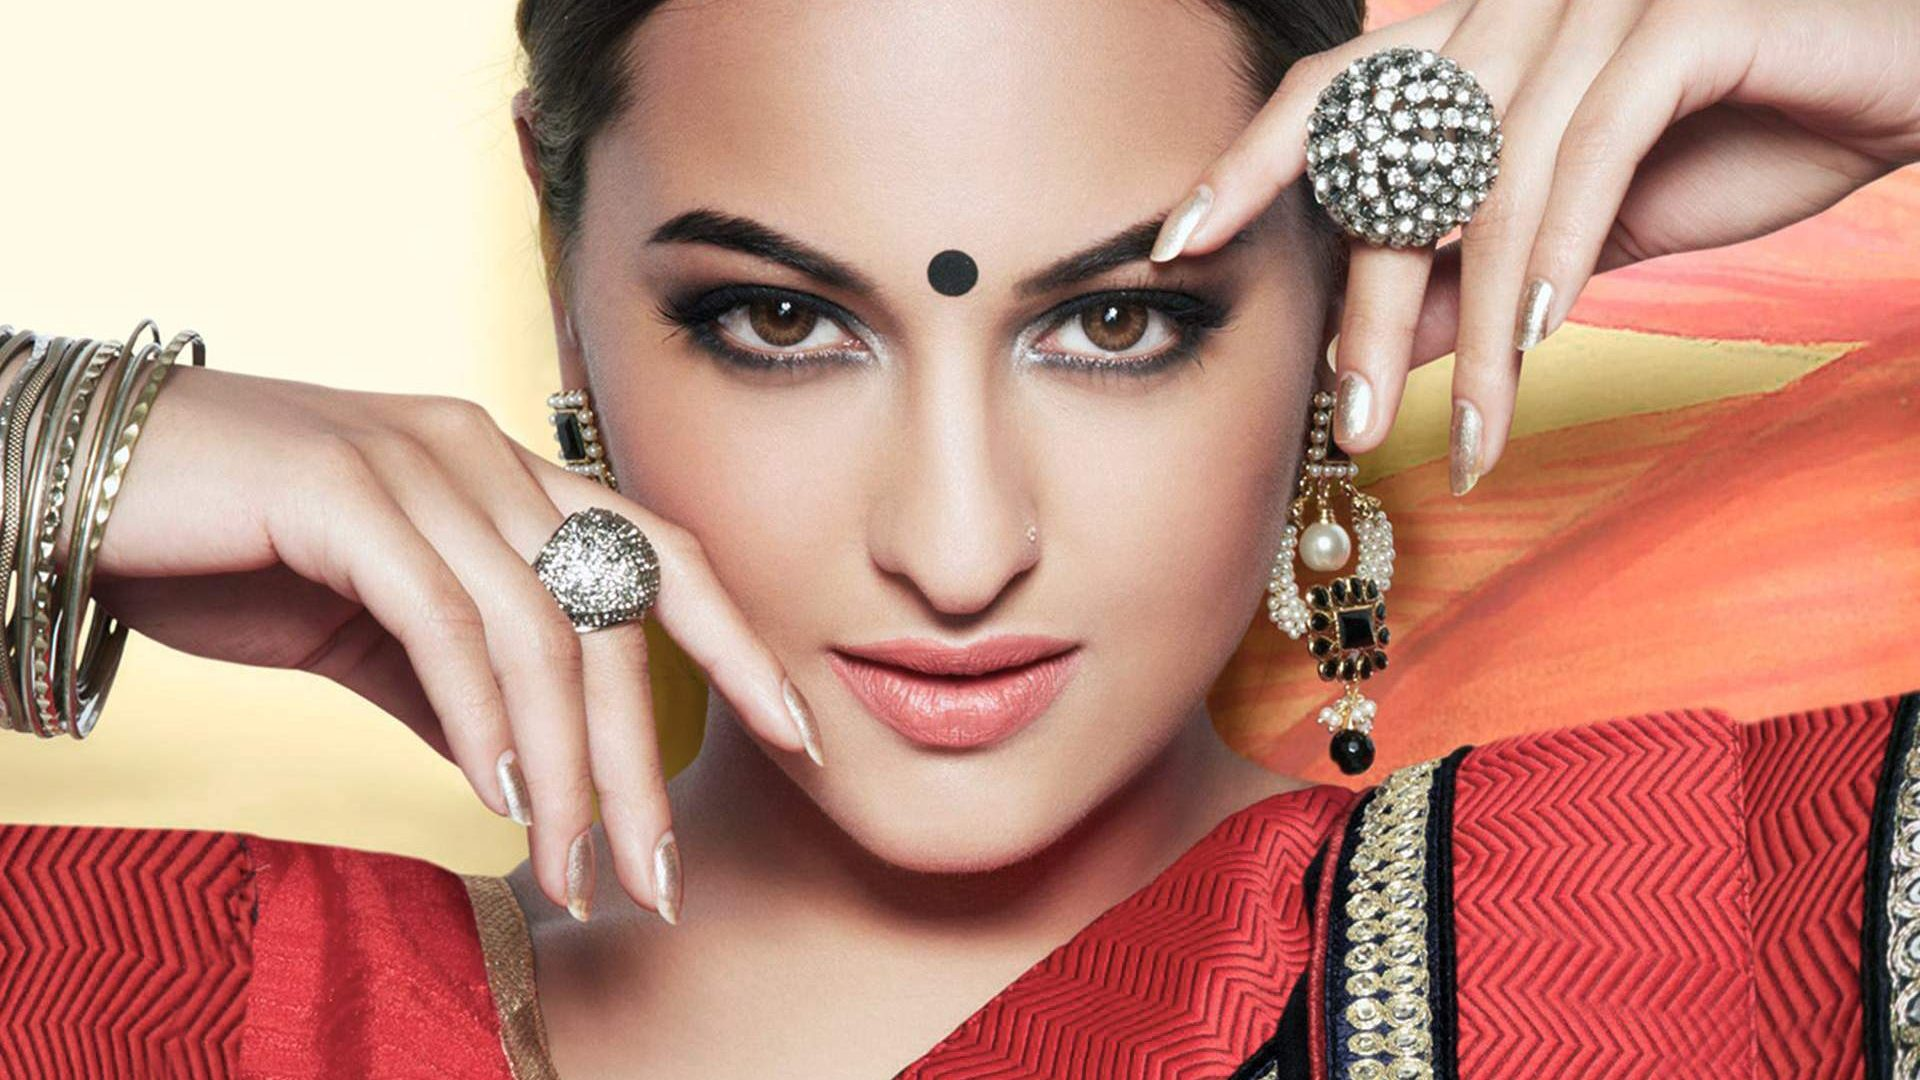 indian actrices images sonakshi sinha hd fond d'écran and background